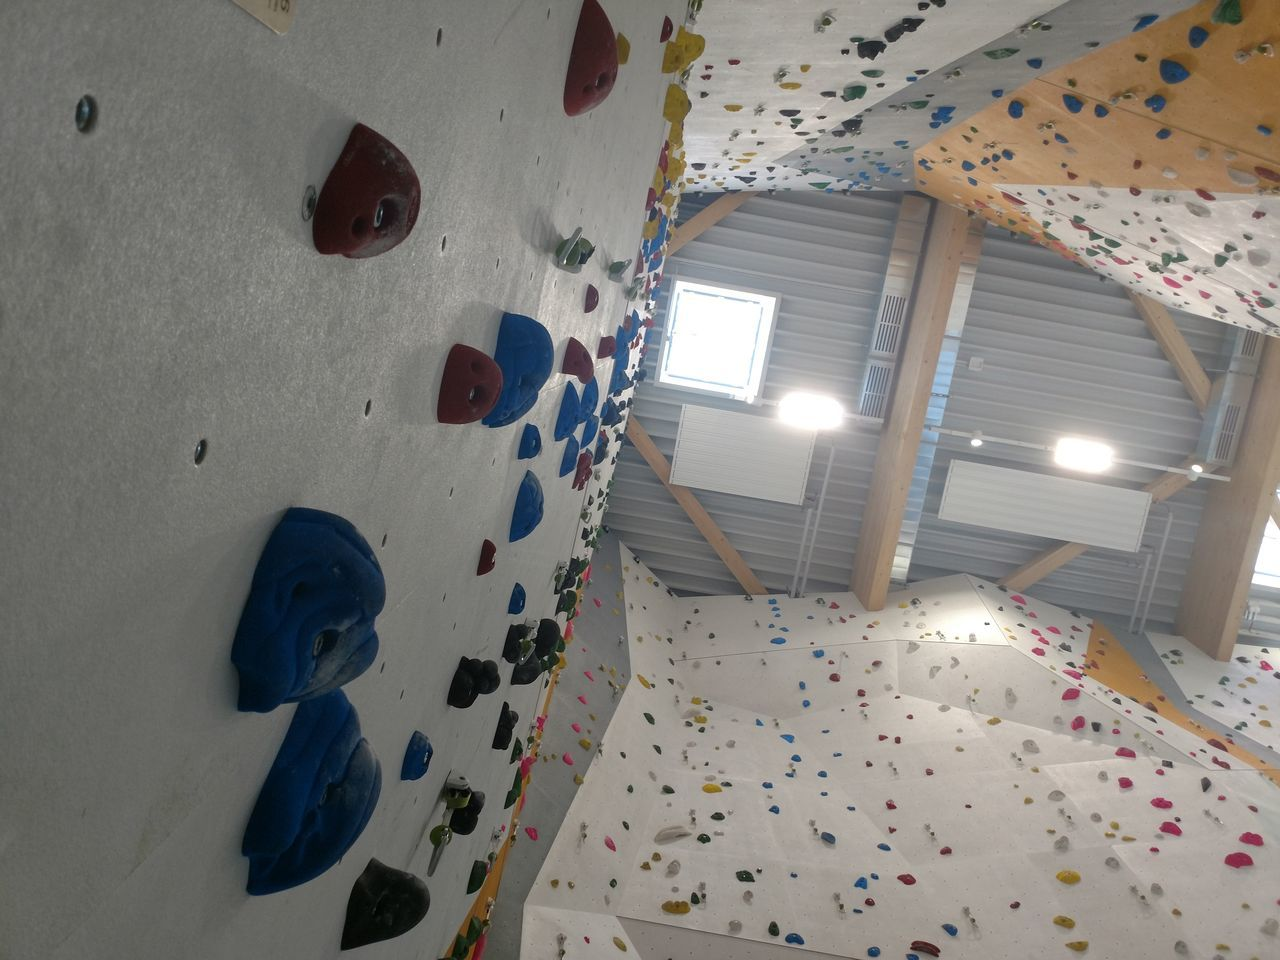 climbing wall, indoors, health club, climbing, extreme sports, sport, rock climbing, adventure, low angle view, illuminated, exercising, gym, challenge, day, no people